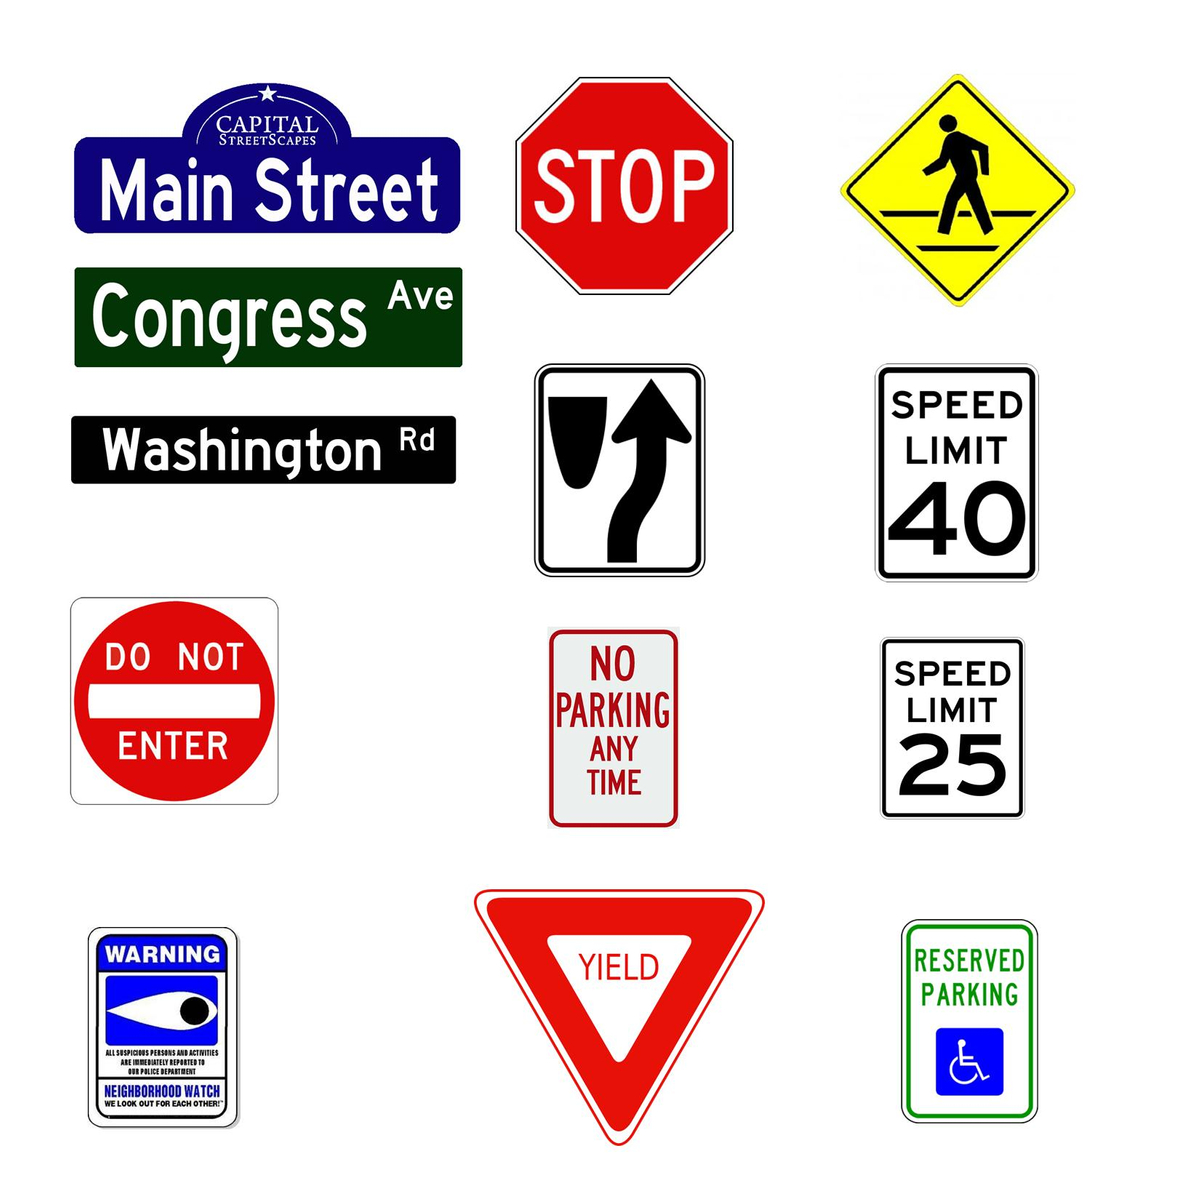 street and traffic signs from capital streetscapes